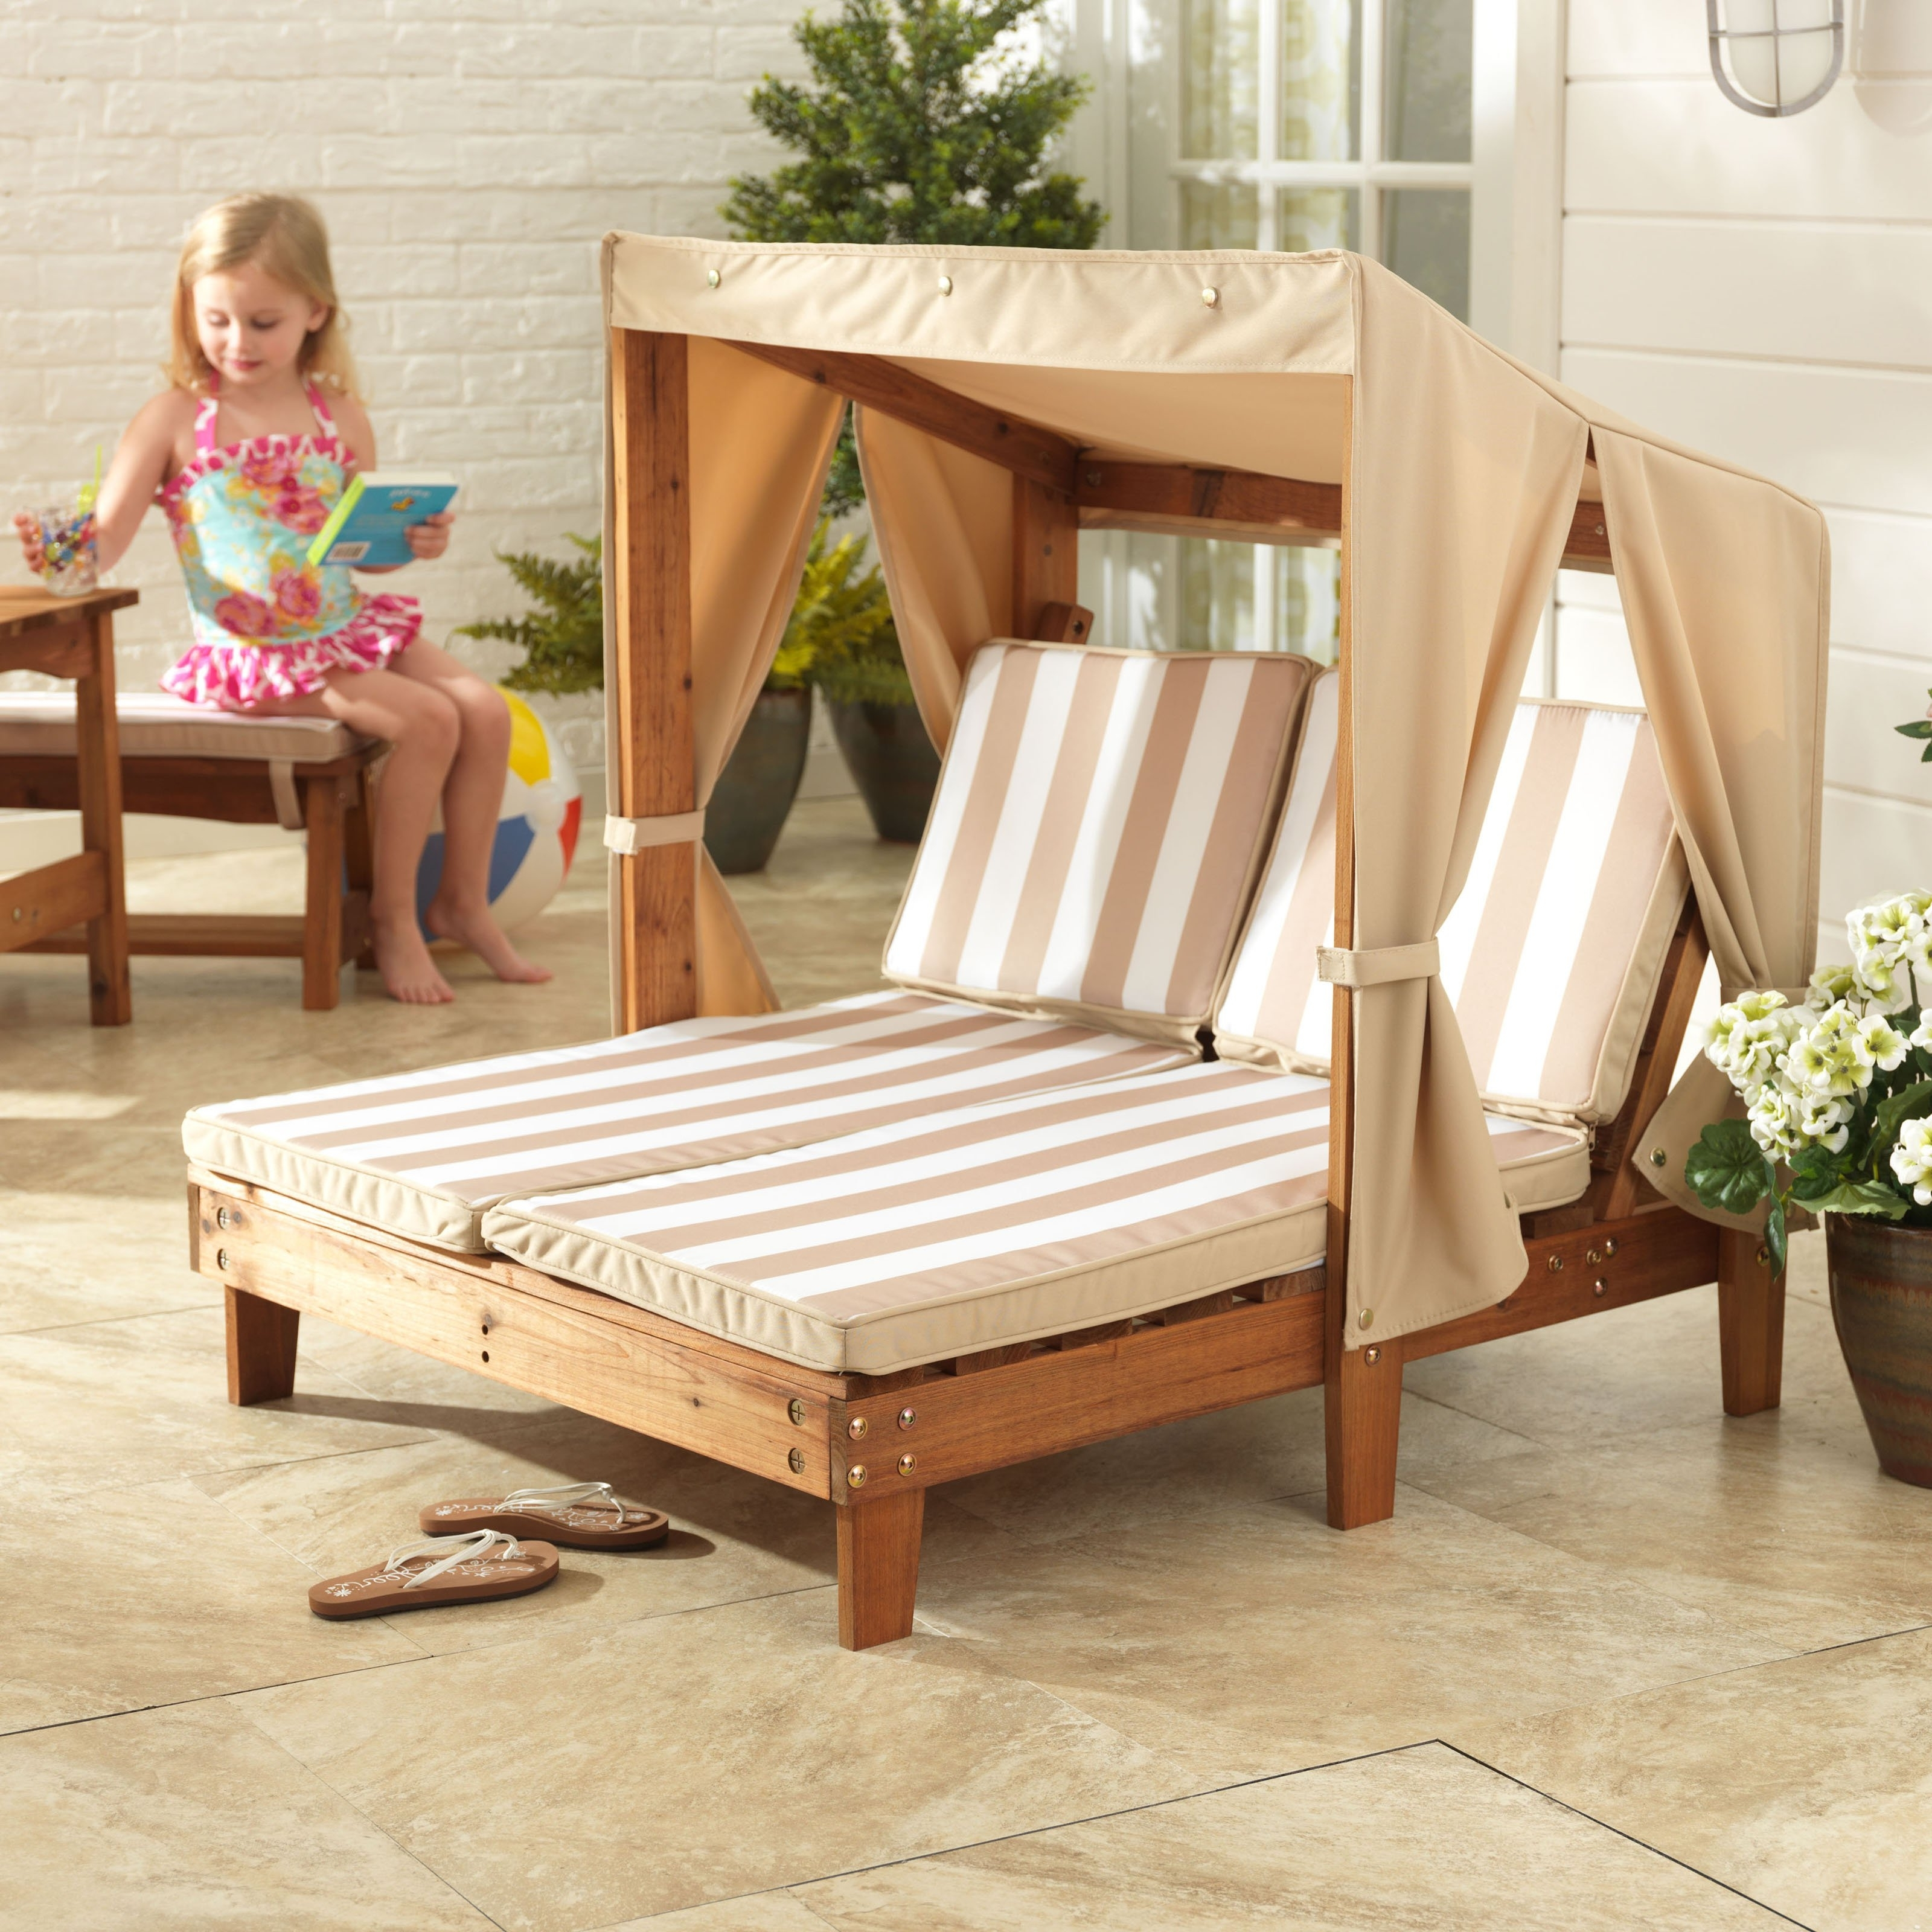 Kidkraft Double Chaise Lounges regarding Most Current Kidkraft Double Chaise Chair - 502 - Walmart